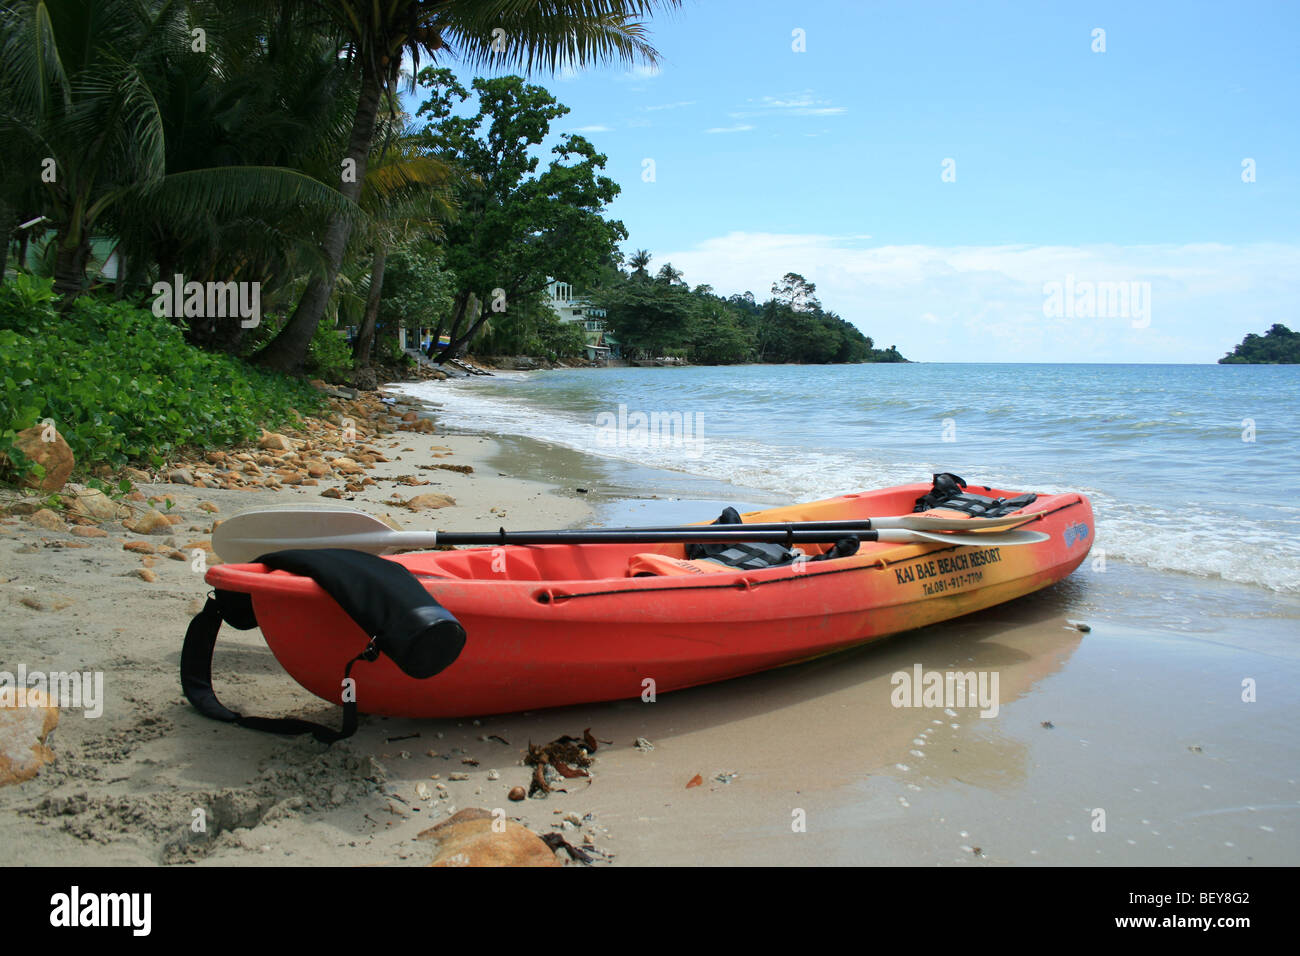 Kayak on a beach in Koh Chang, Thailand. - Stock Image